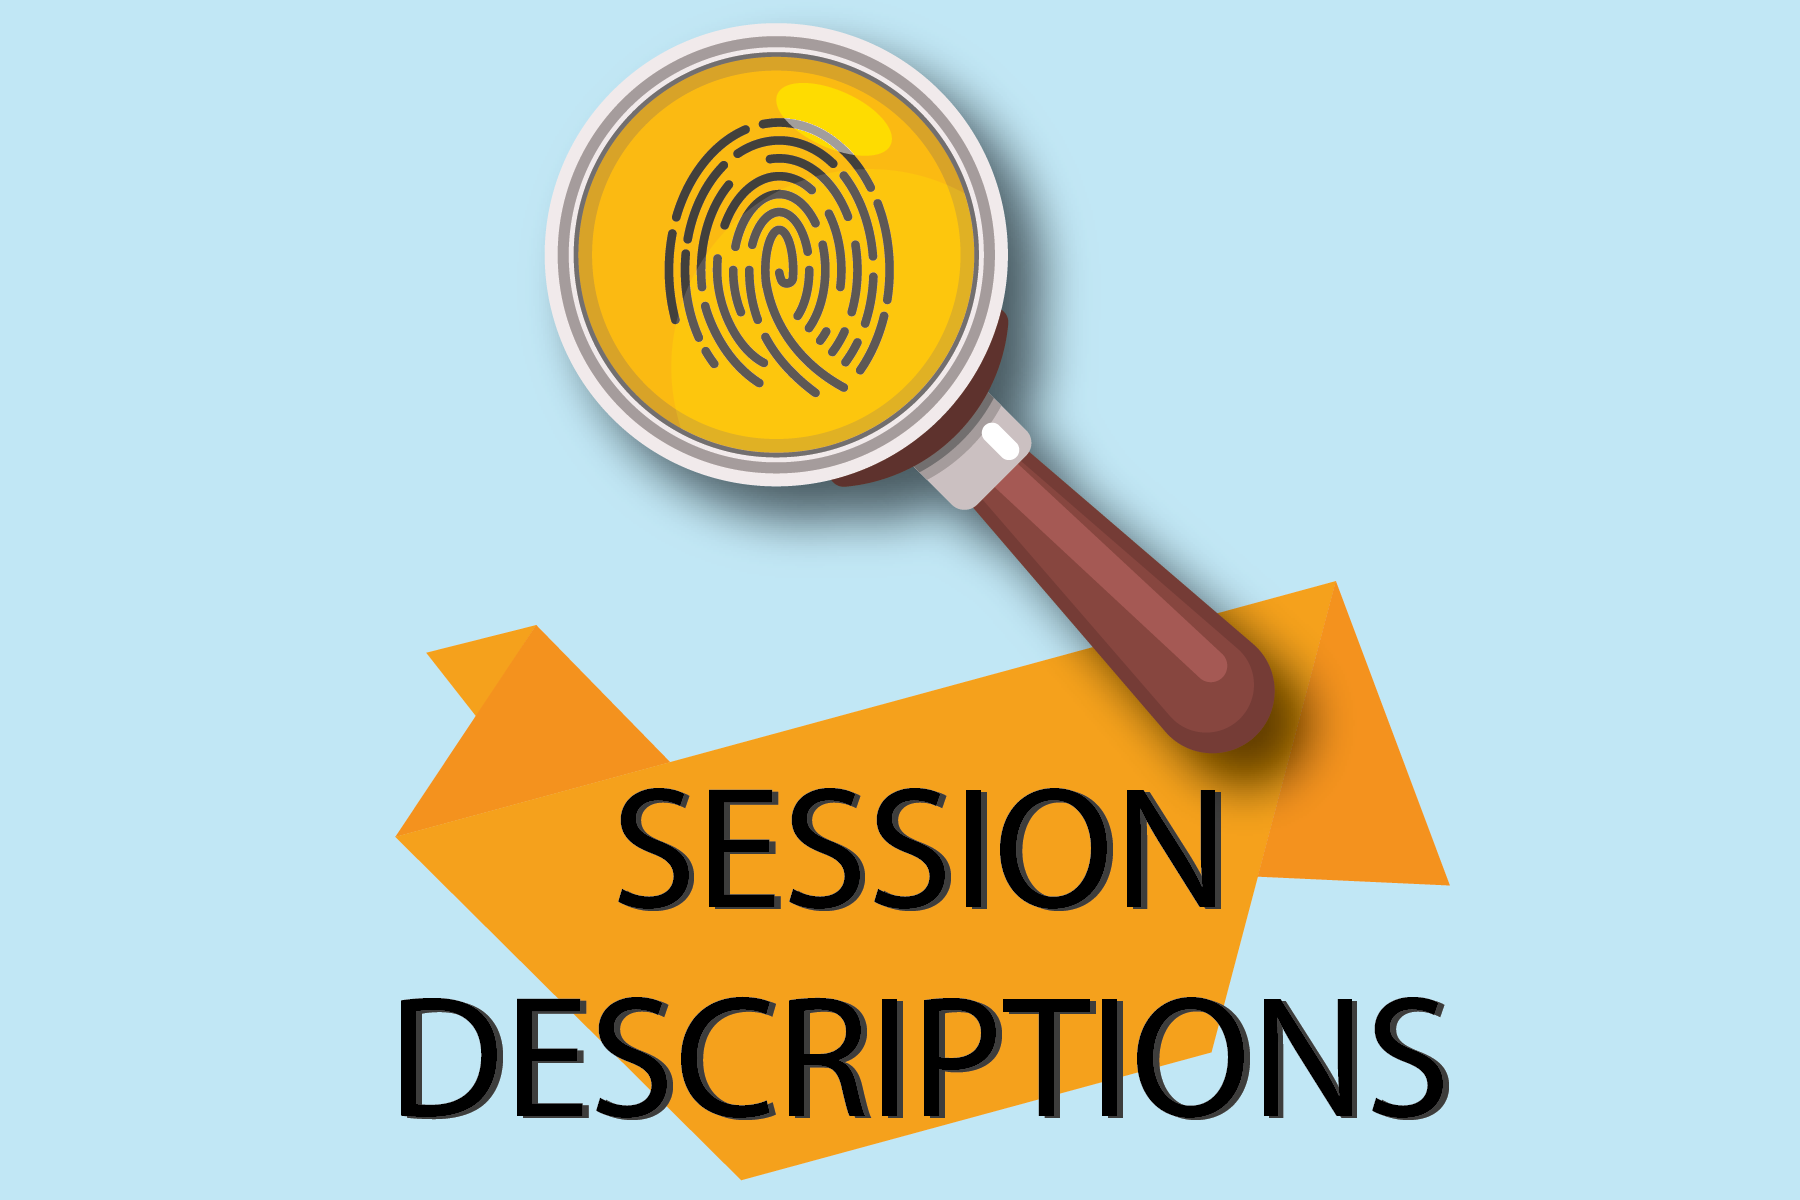 Session Description